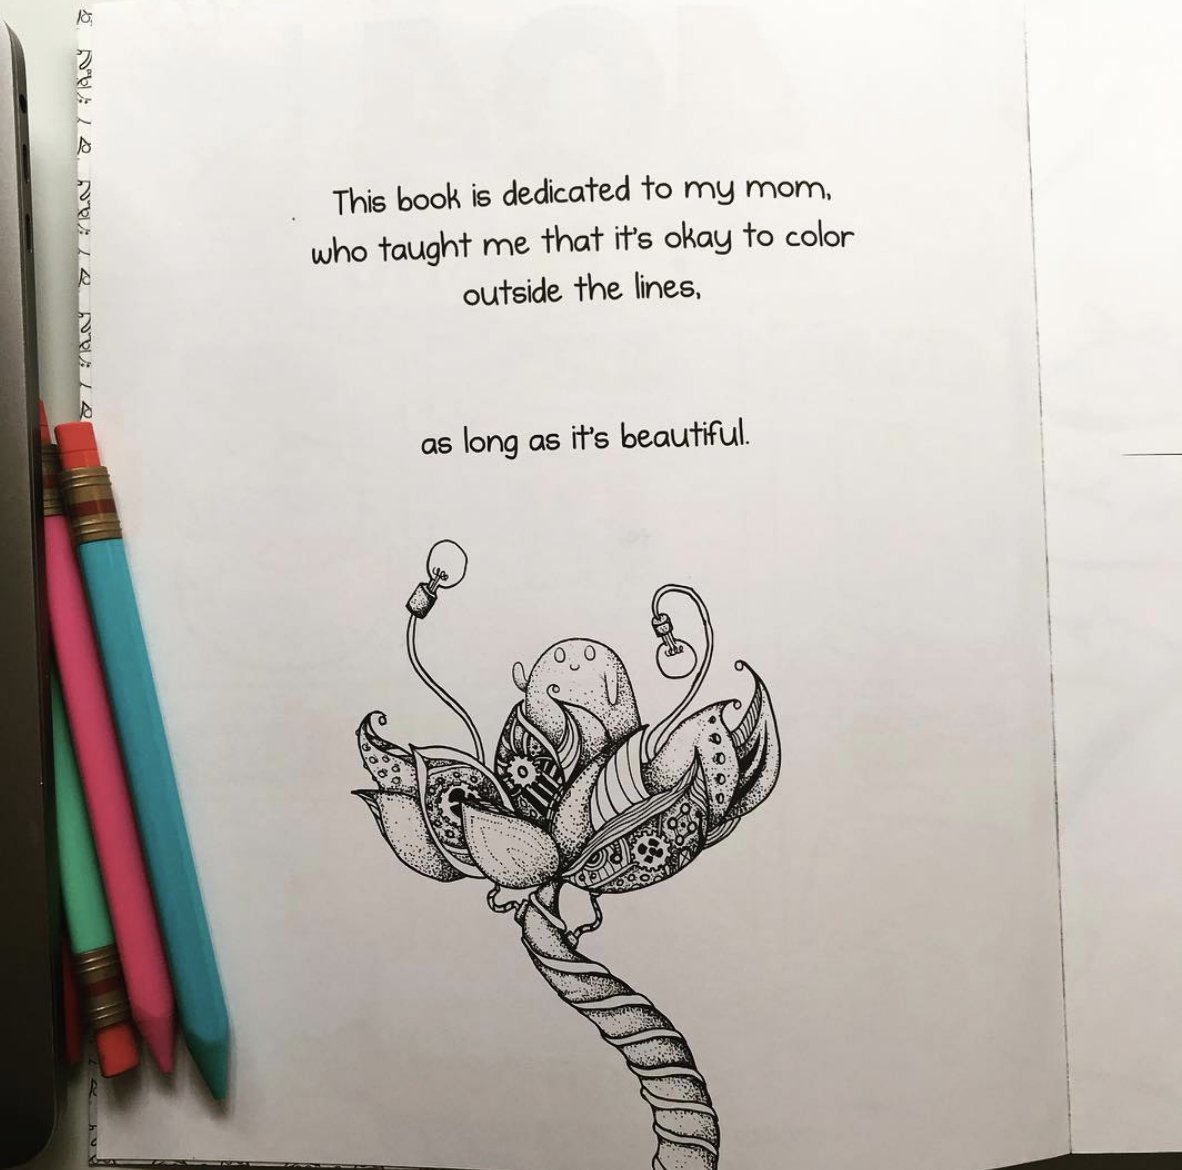 Matthew Inman On Twitter The Dedication Page From My Coloring Book